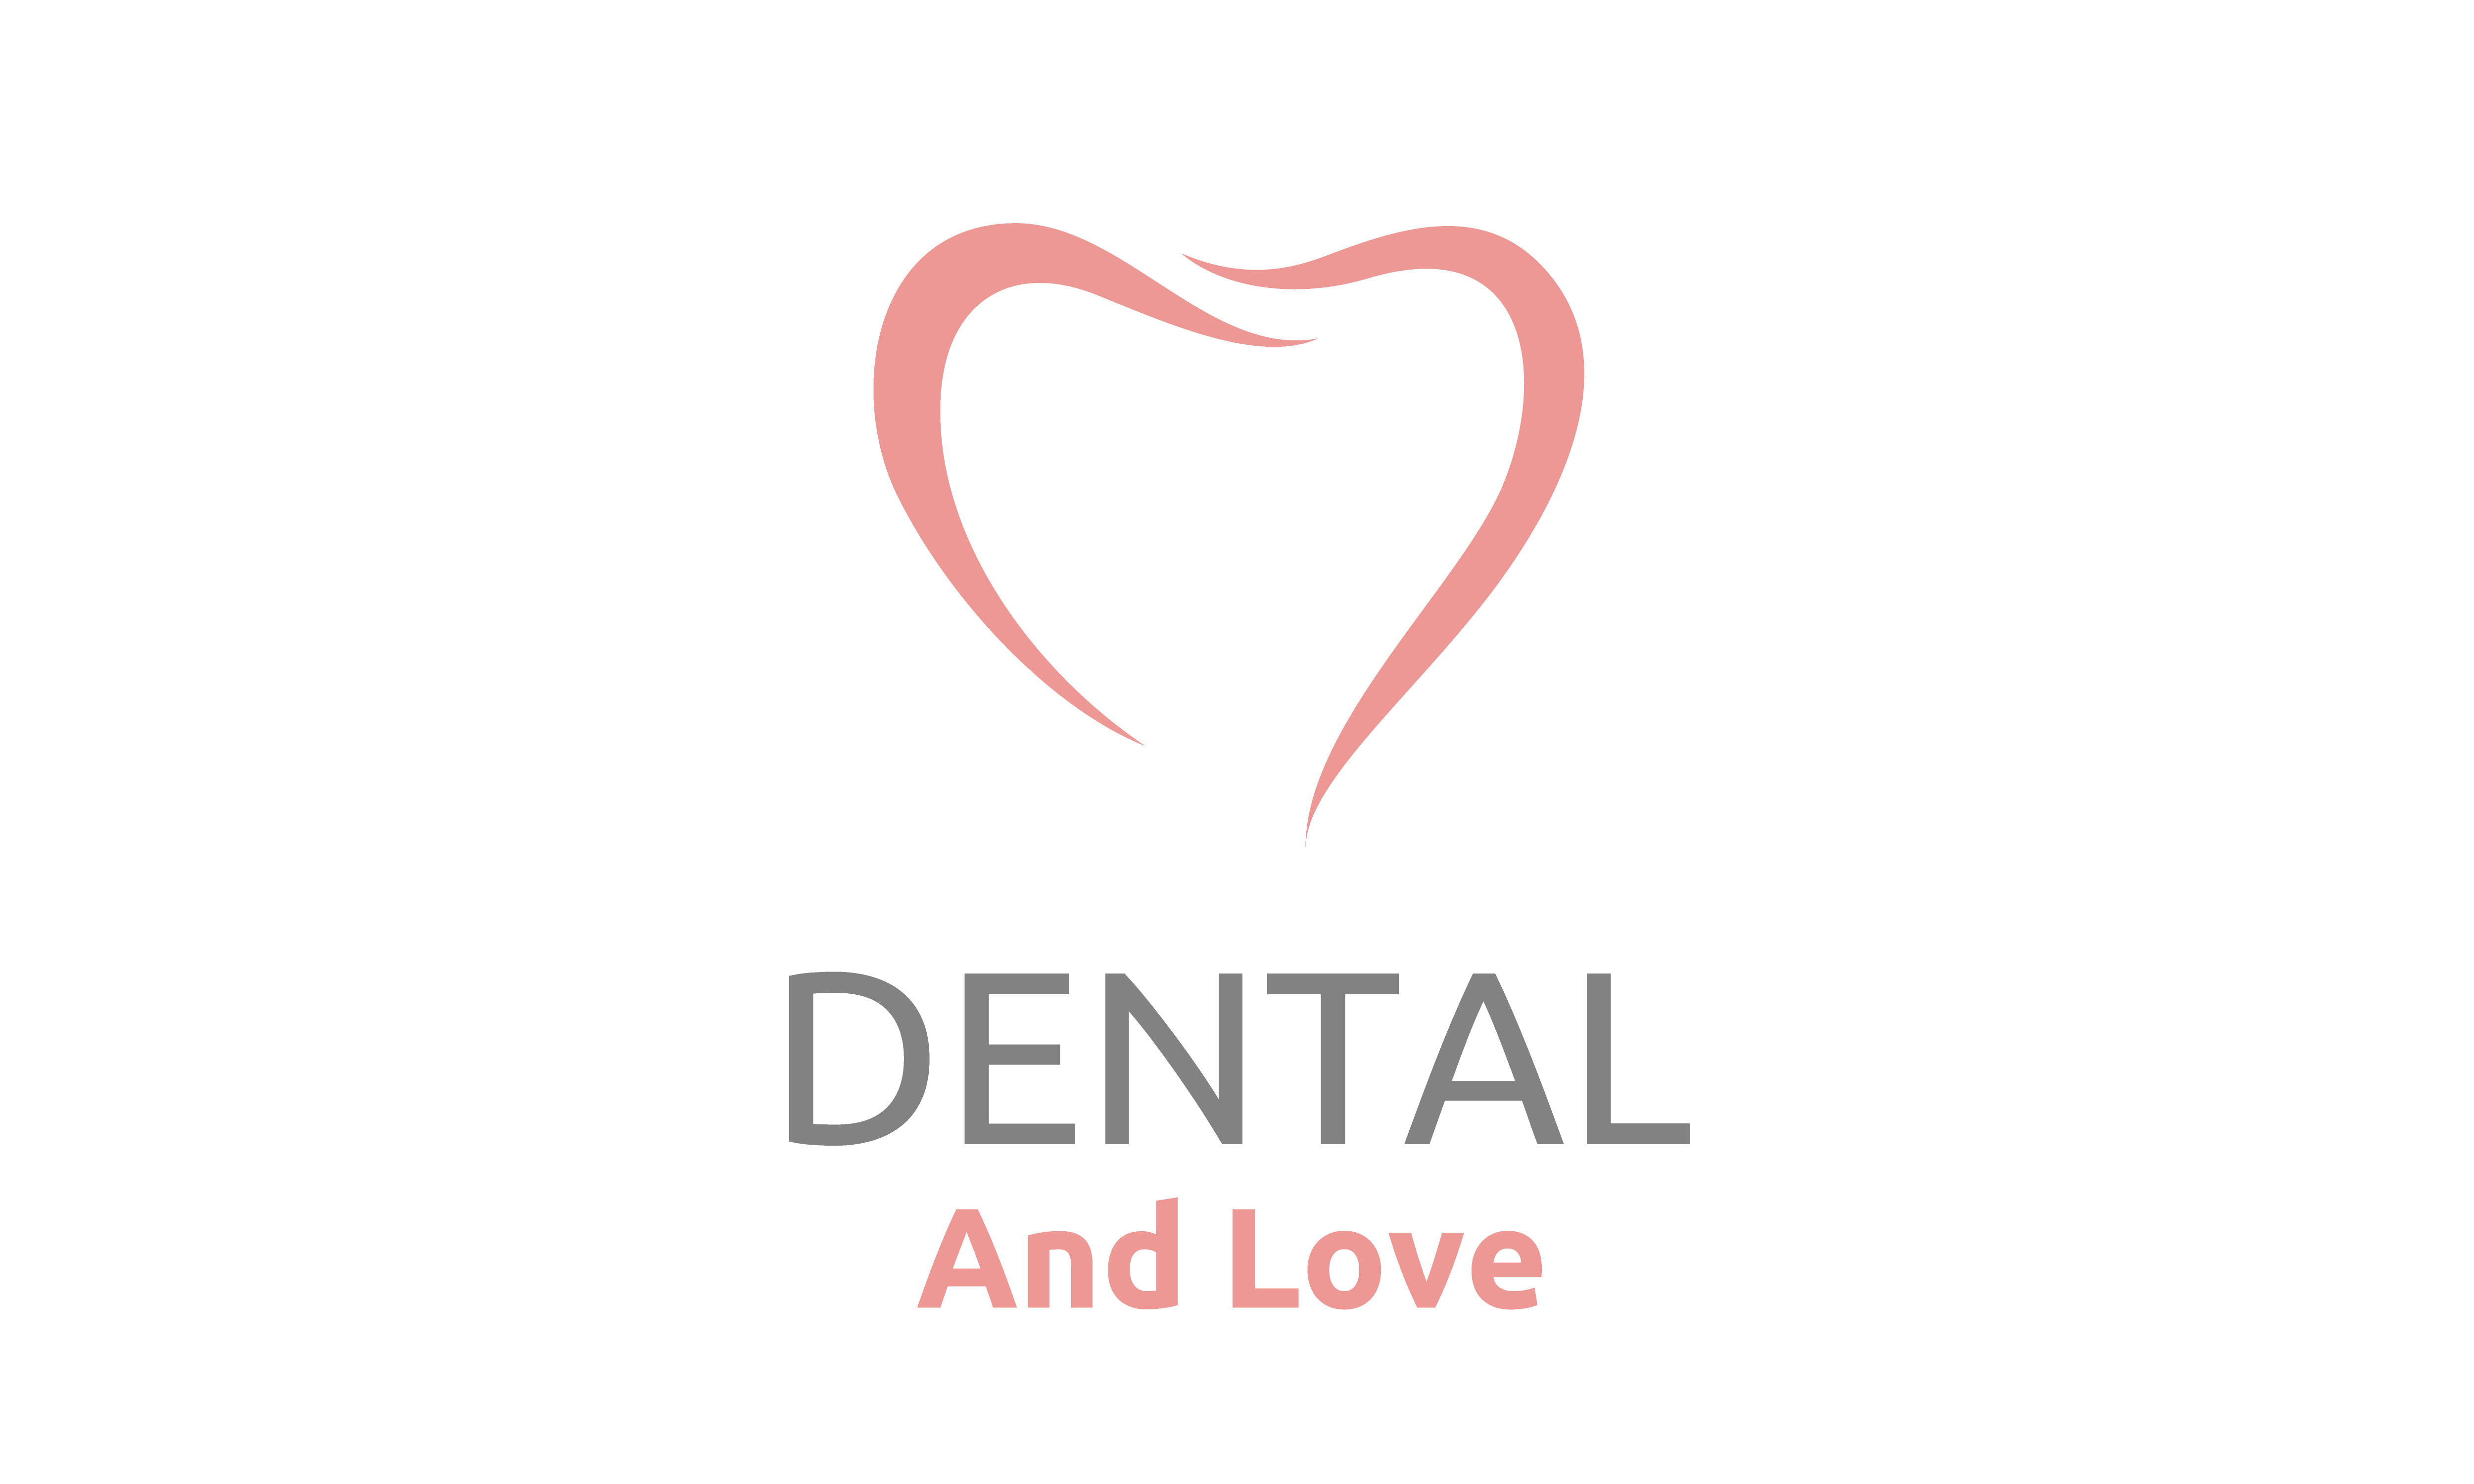 Download Free Tooth Teeth Dentist Dental Heart Love Graphic By Enola99d for Cricut Explore, Silhouette and other cutting machines.